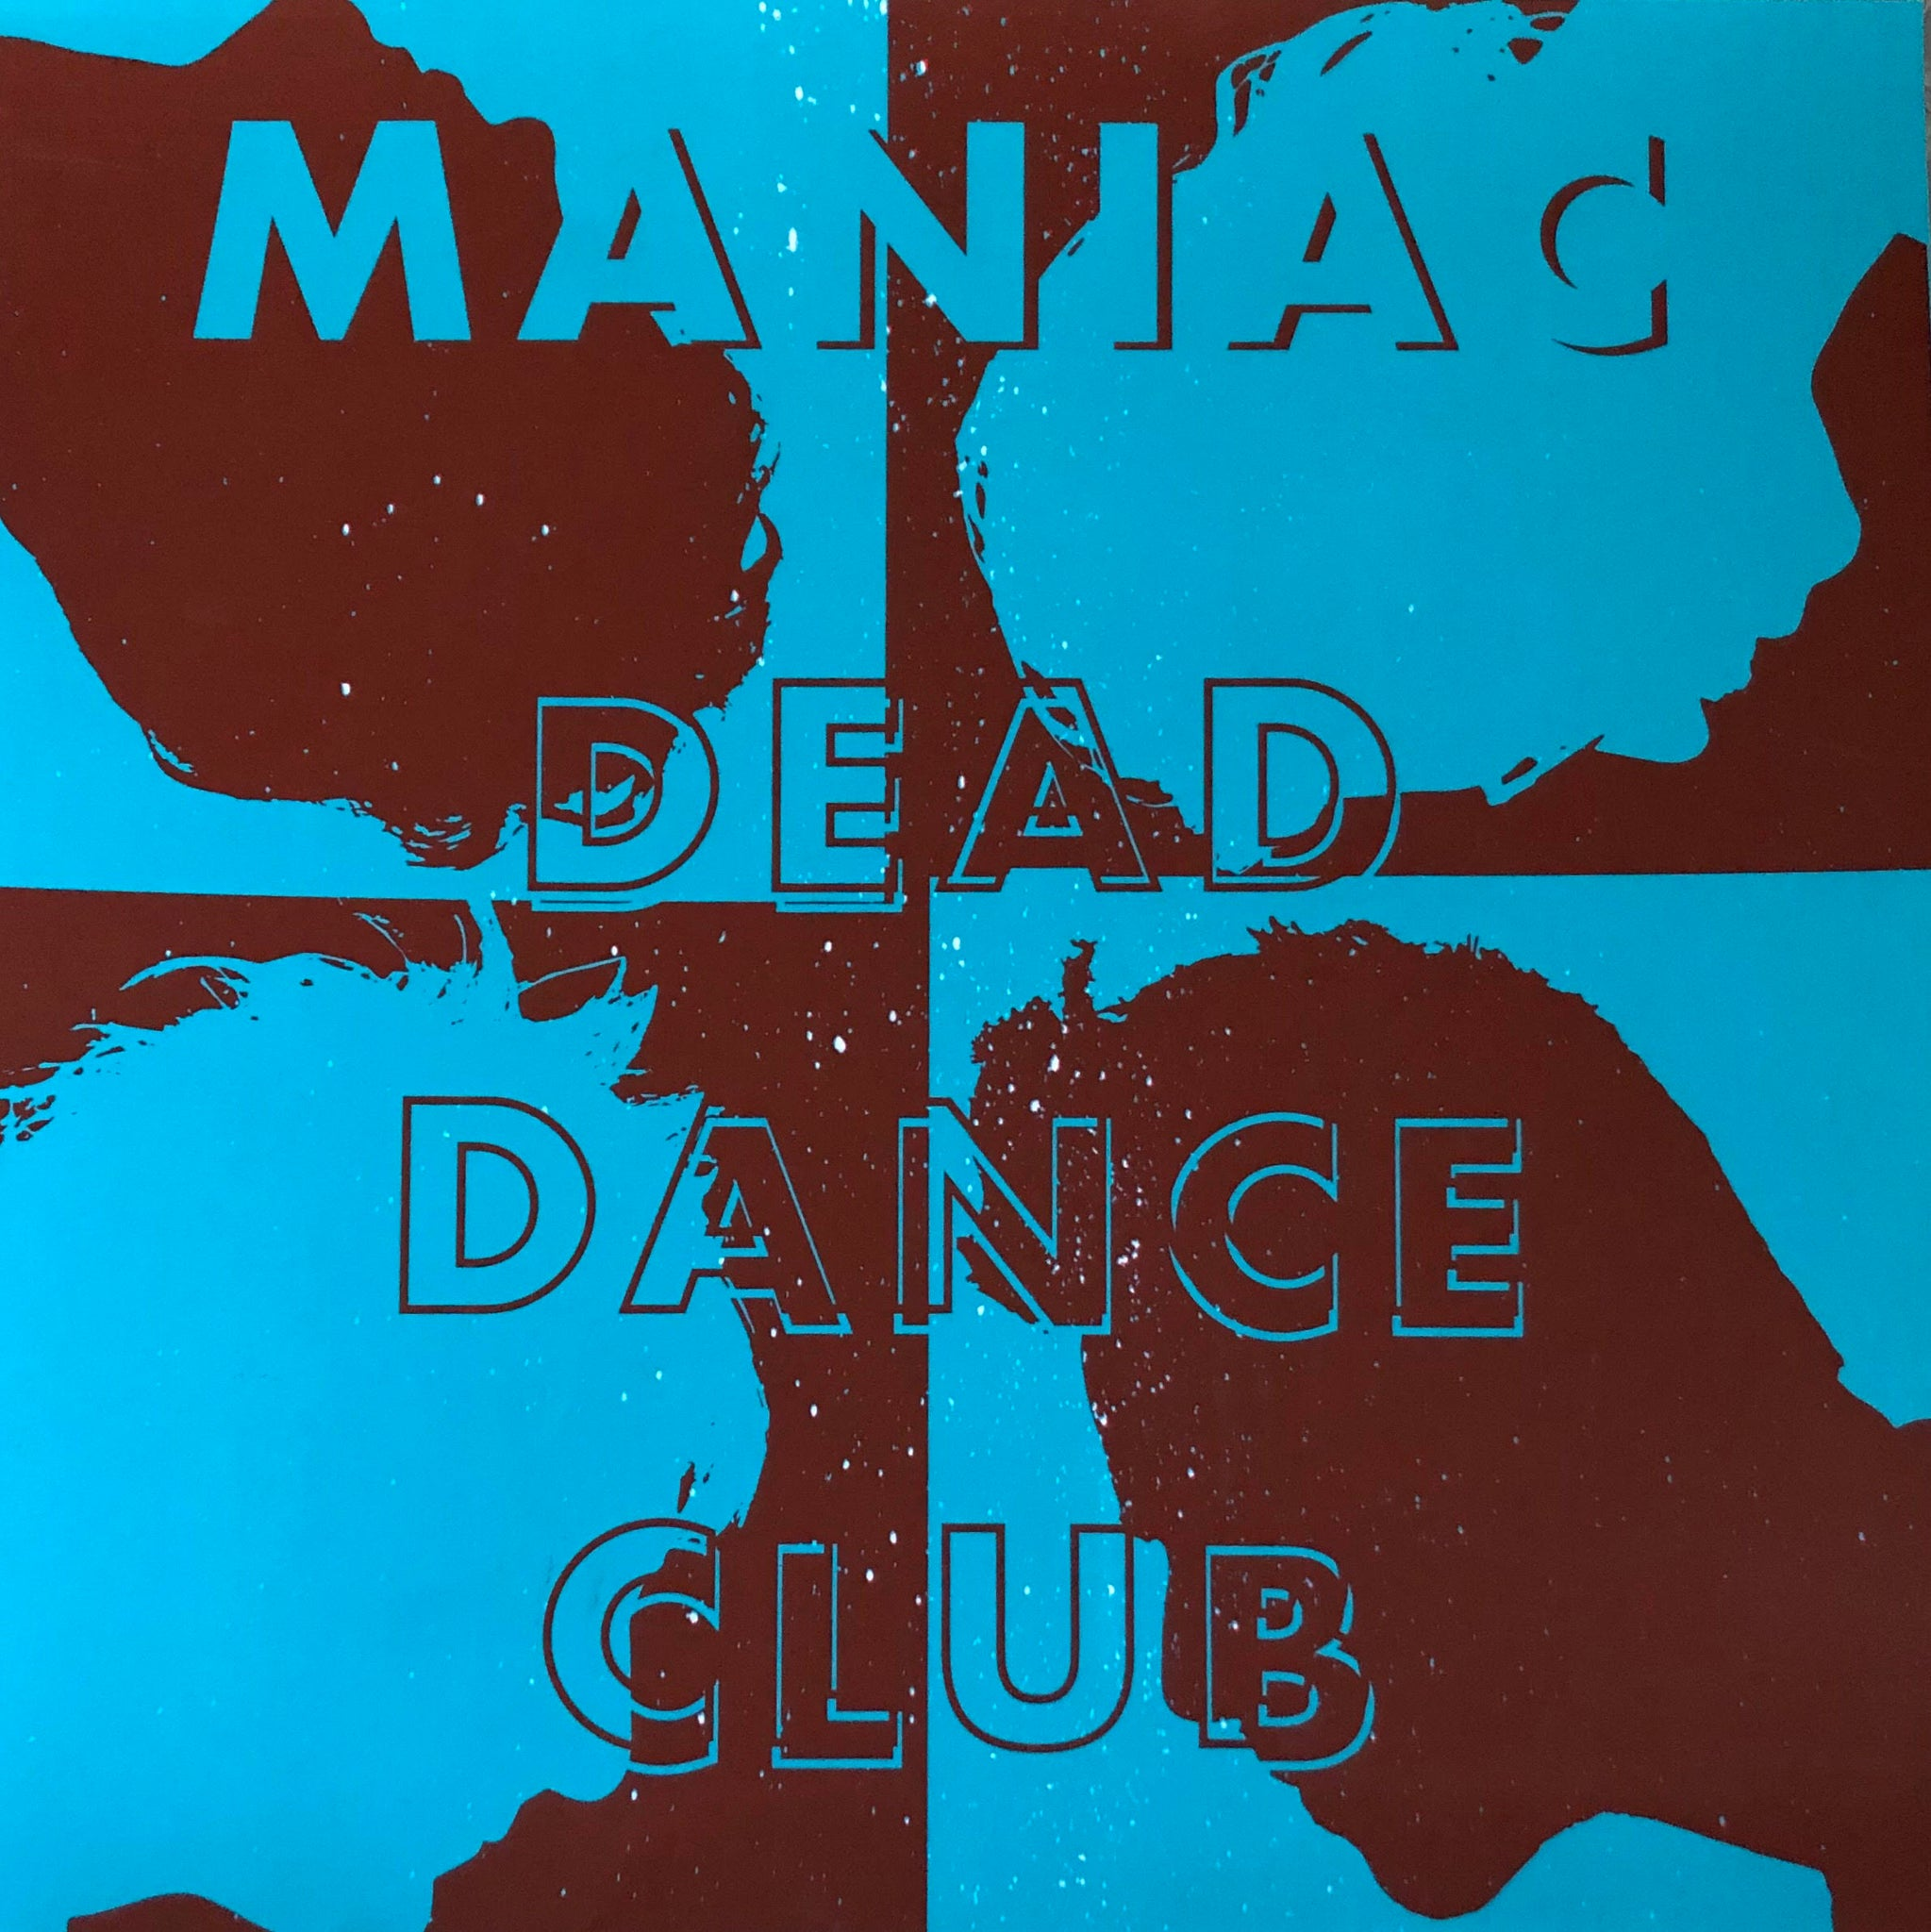 Maniac - Dead Dance Club (European Tour Special Edition) - LP